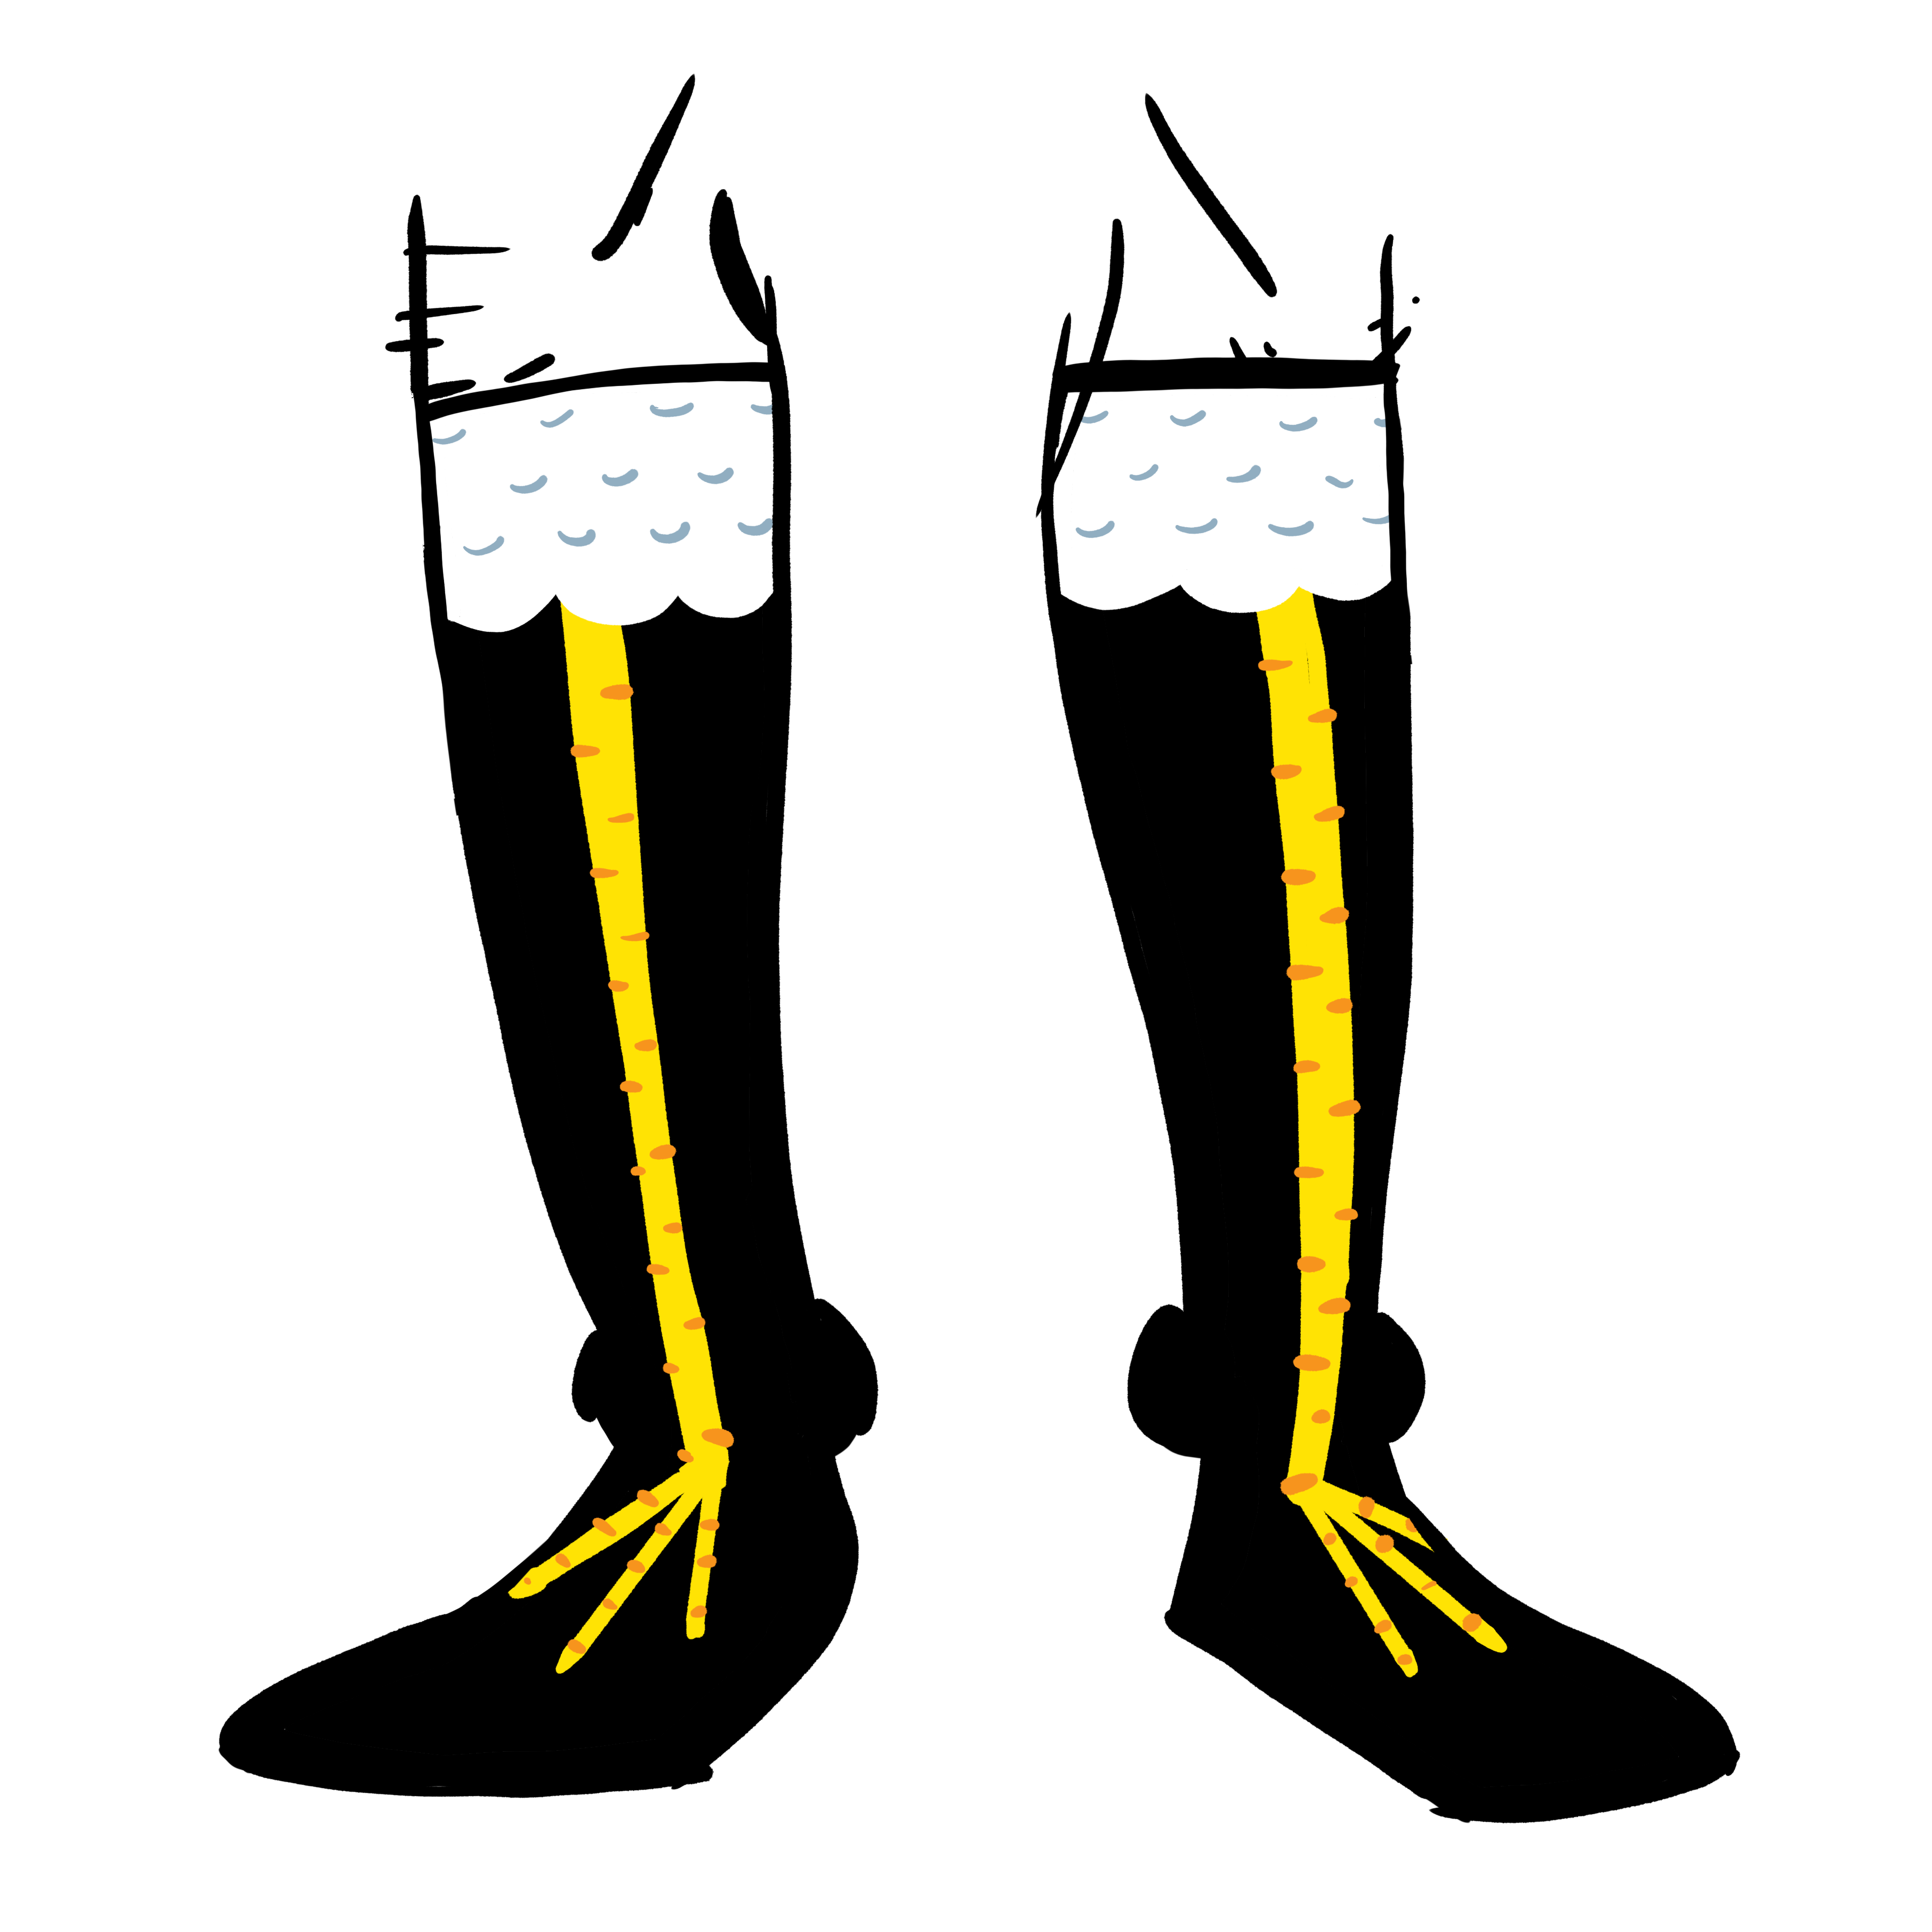 Black knee high socks. The tops have white feathers and the yellow chicken legs go down the shins.